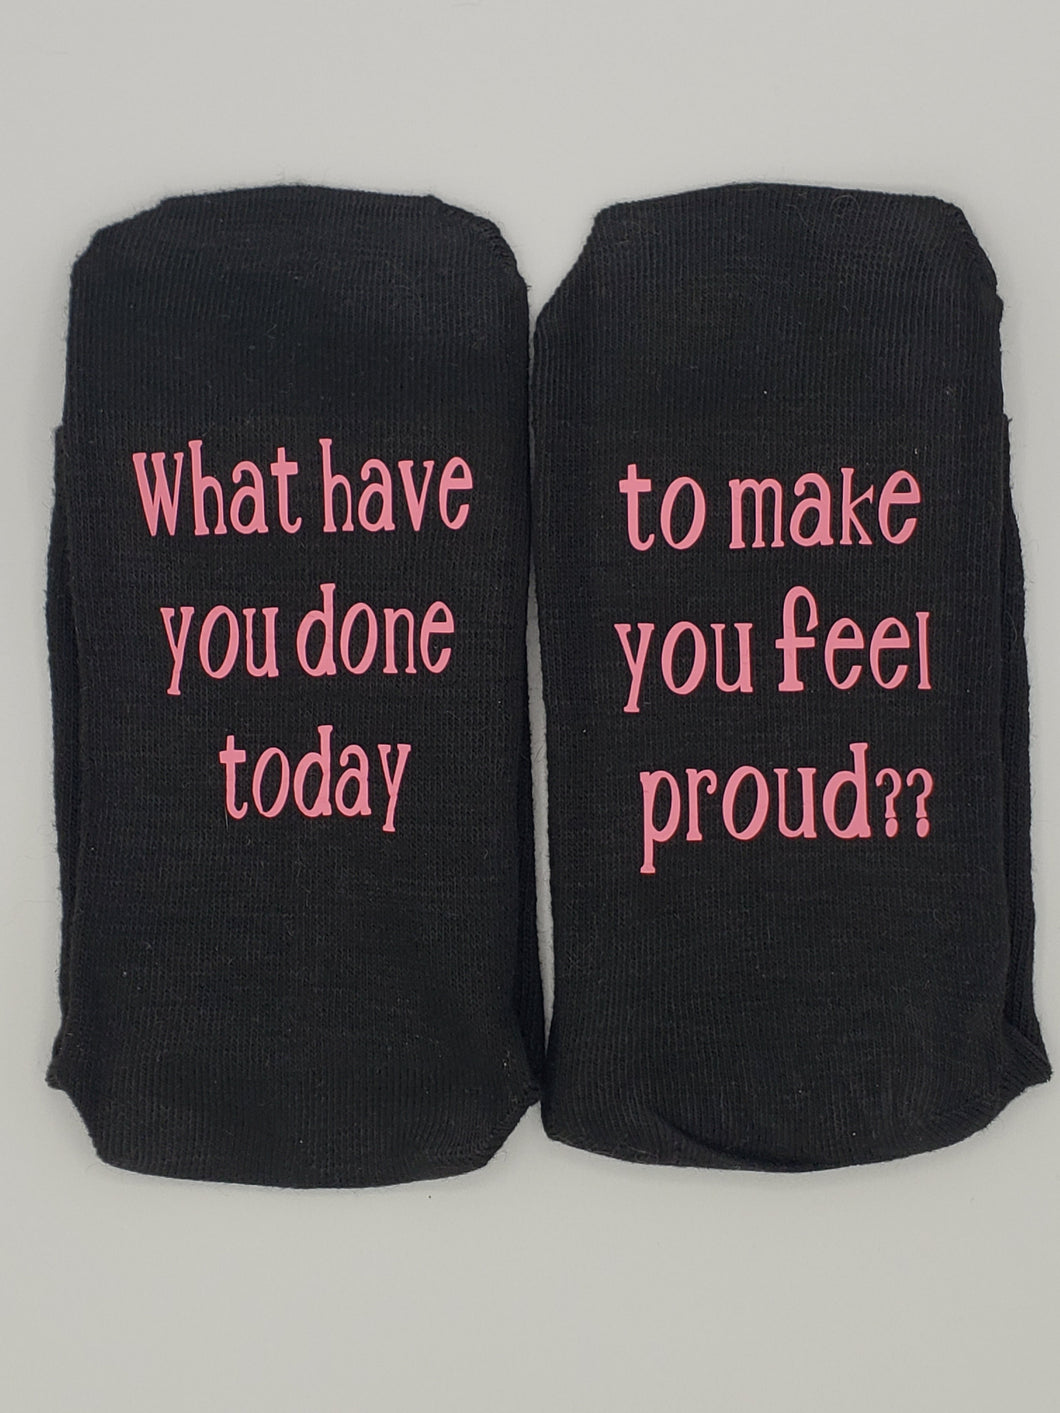 What have you done today-Black Women's Socks